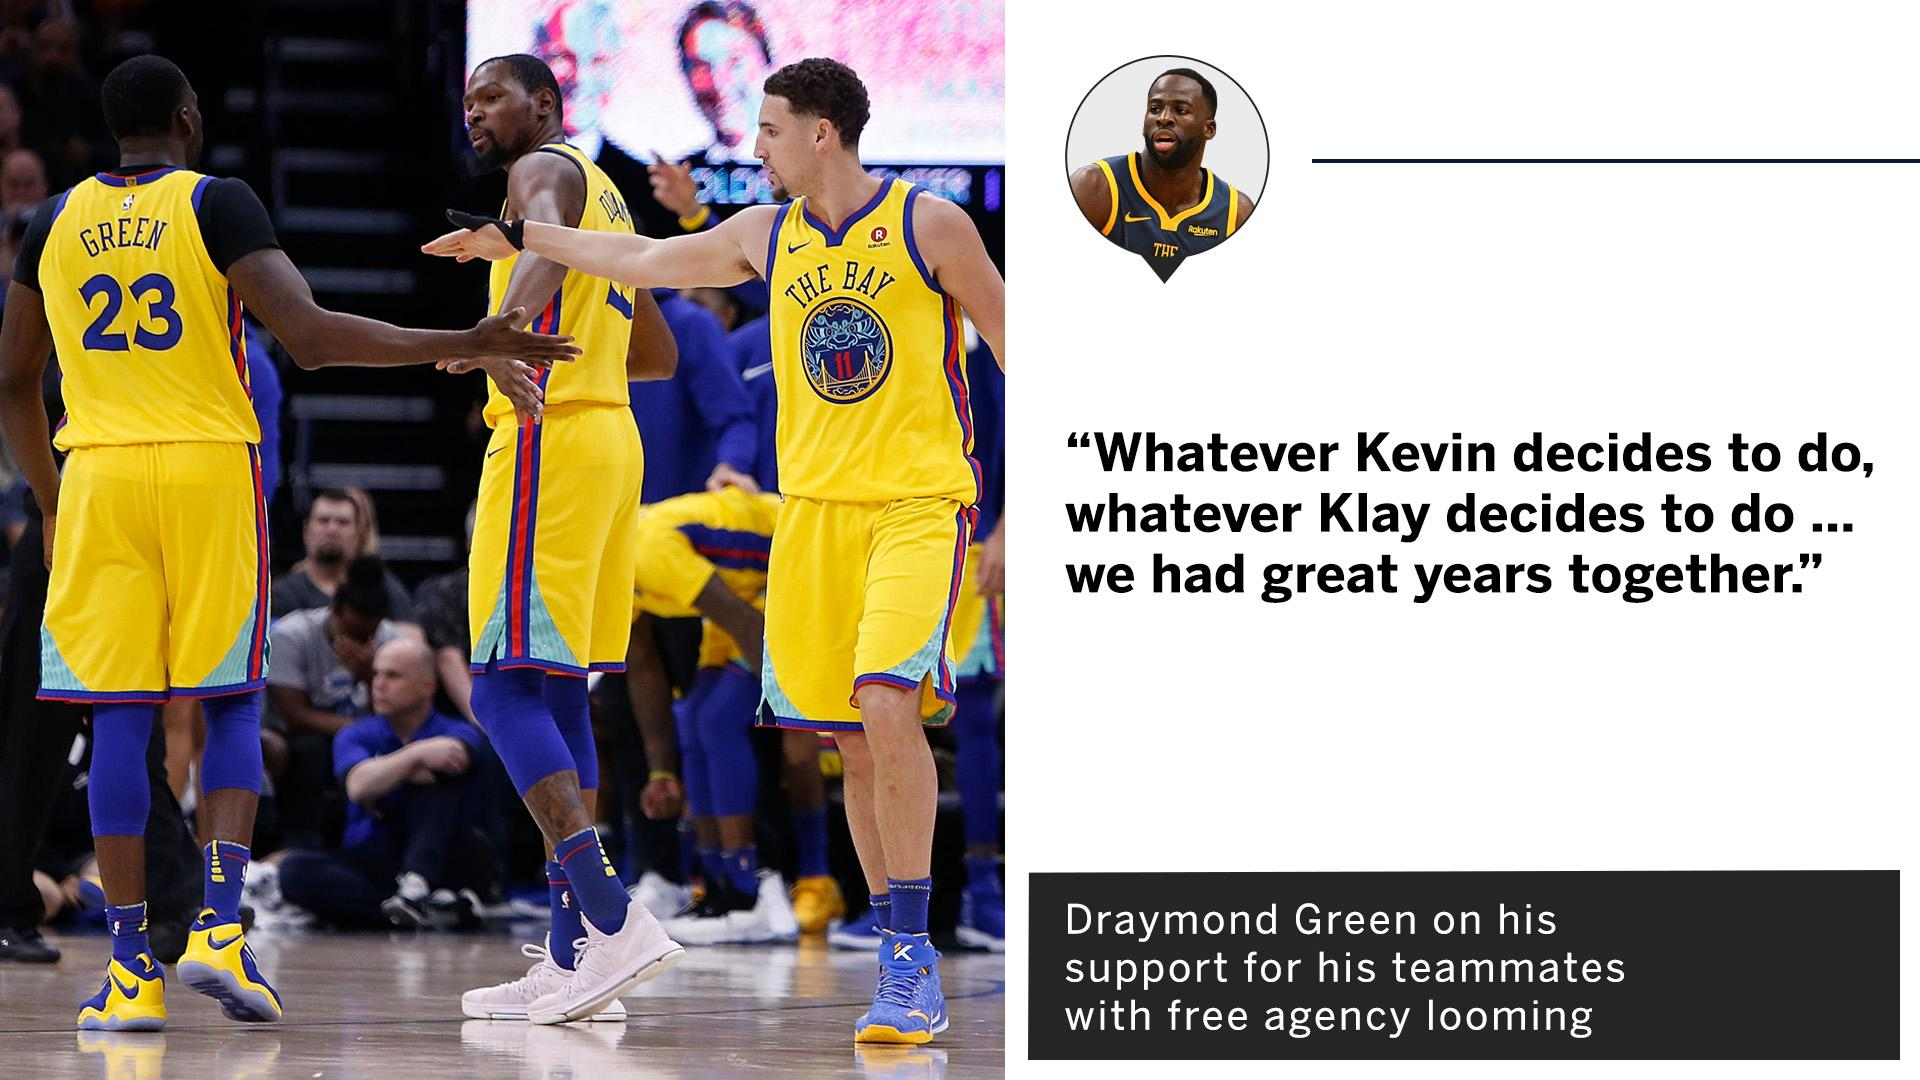 Draymond is ready to support his teammates, no matter their decision in free agency. https://t.co/DmCsDR4NHZ